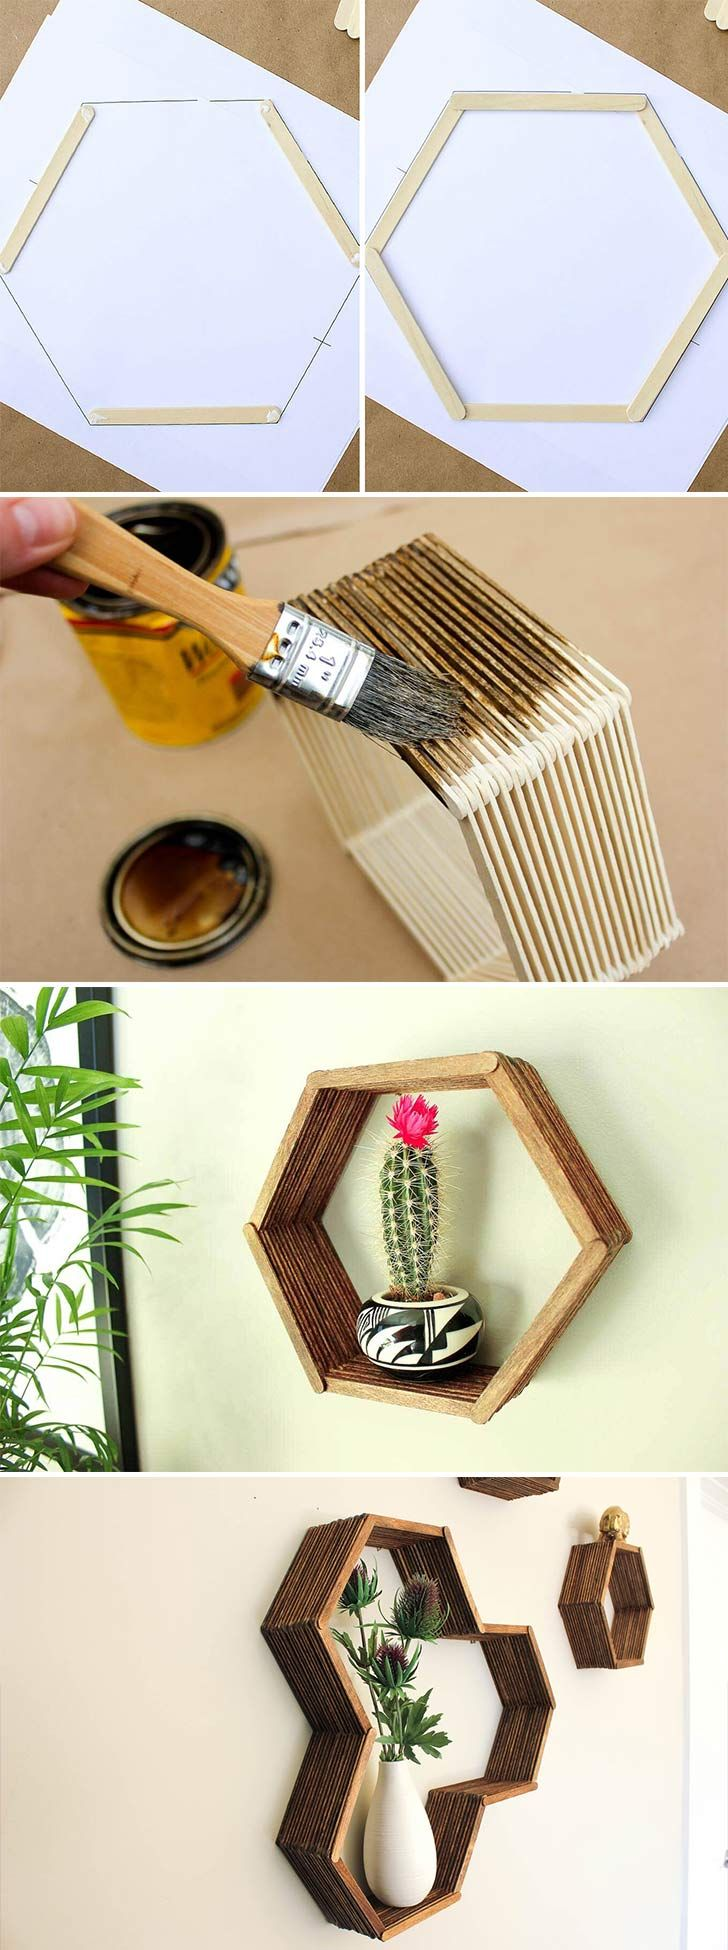 40 Amazing DIY Home Decor Ideas That Won t Look DIYed   Page 5 of 40Best 20  DIY Home Decor ideas on Pinterest   Diy house decor  Diy  . Diy Room Decor Ideas Pinterest. Home Design Ideas